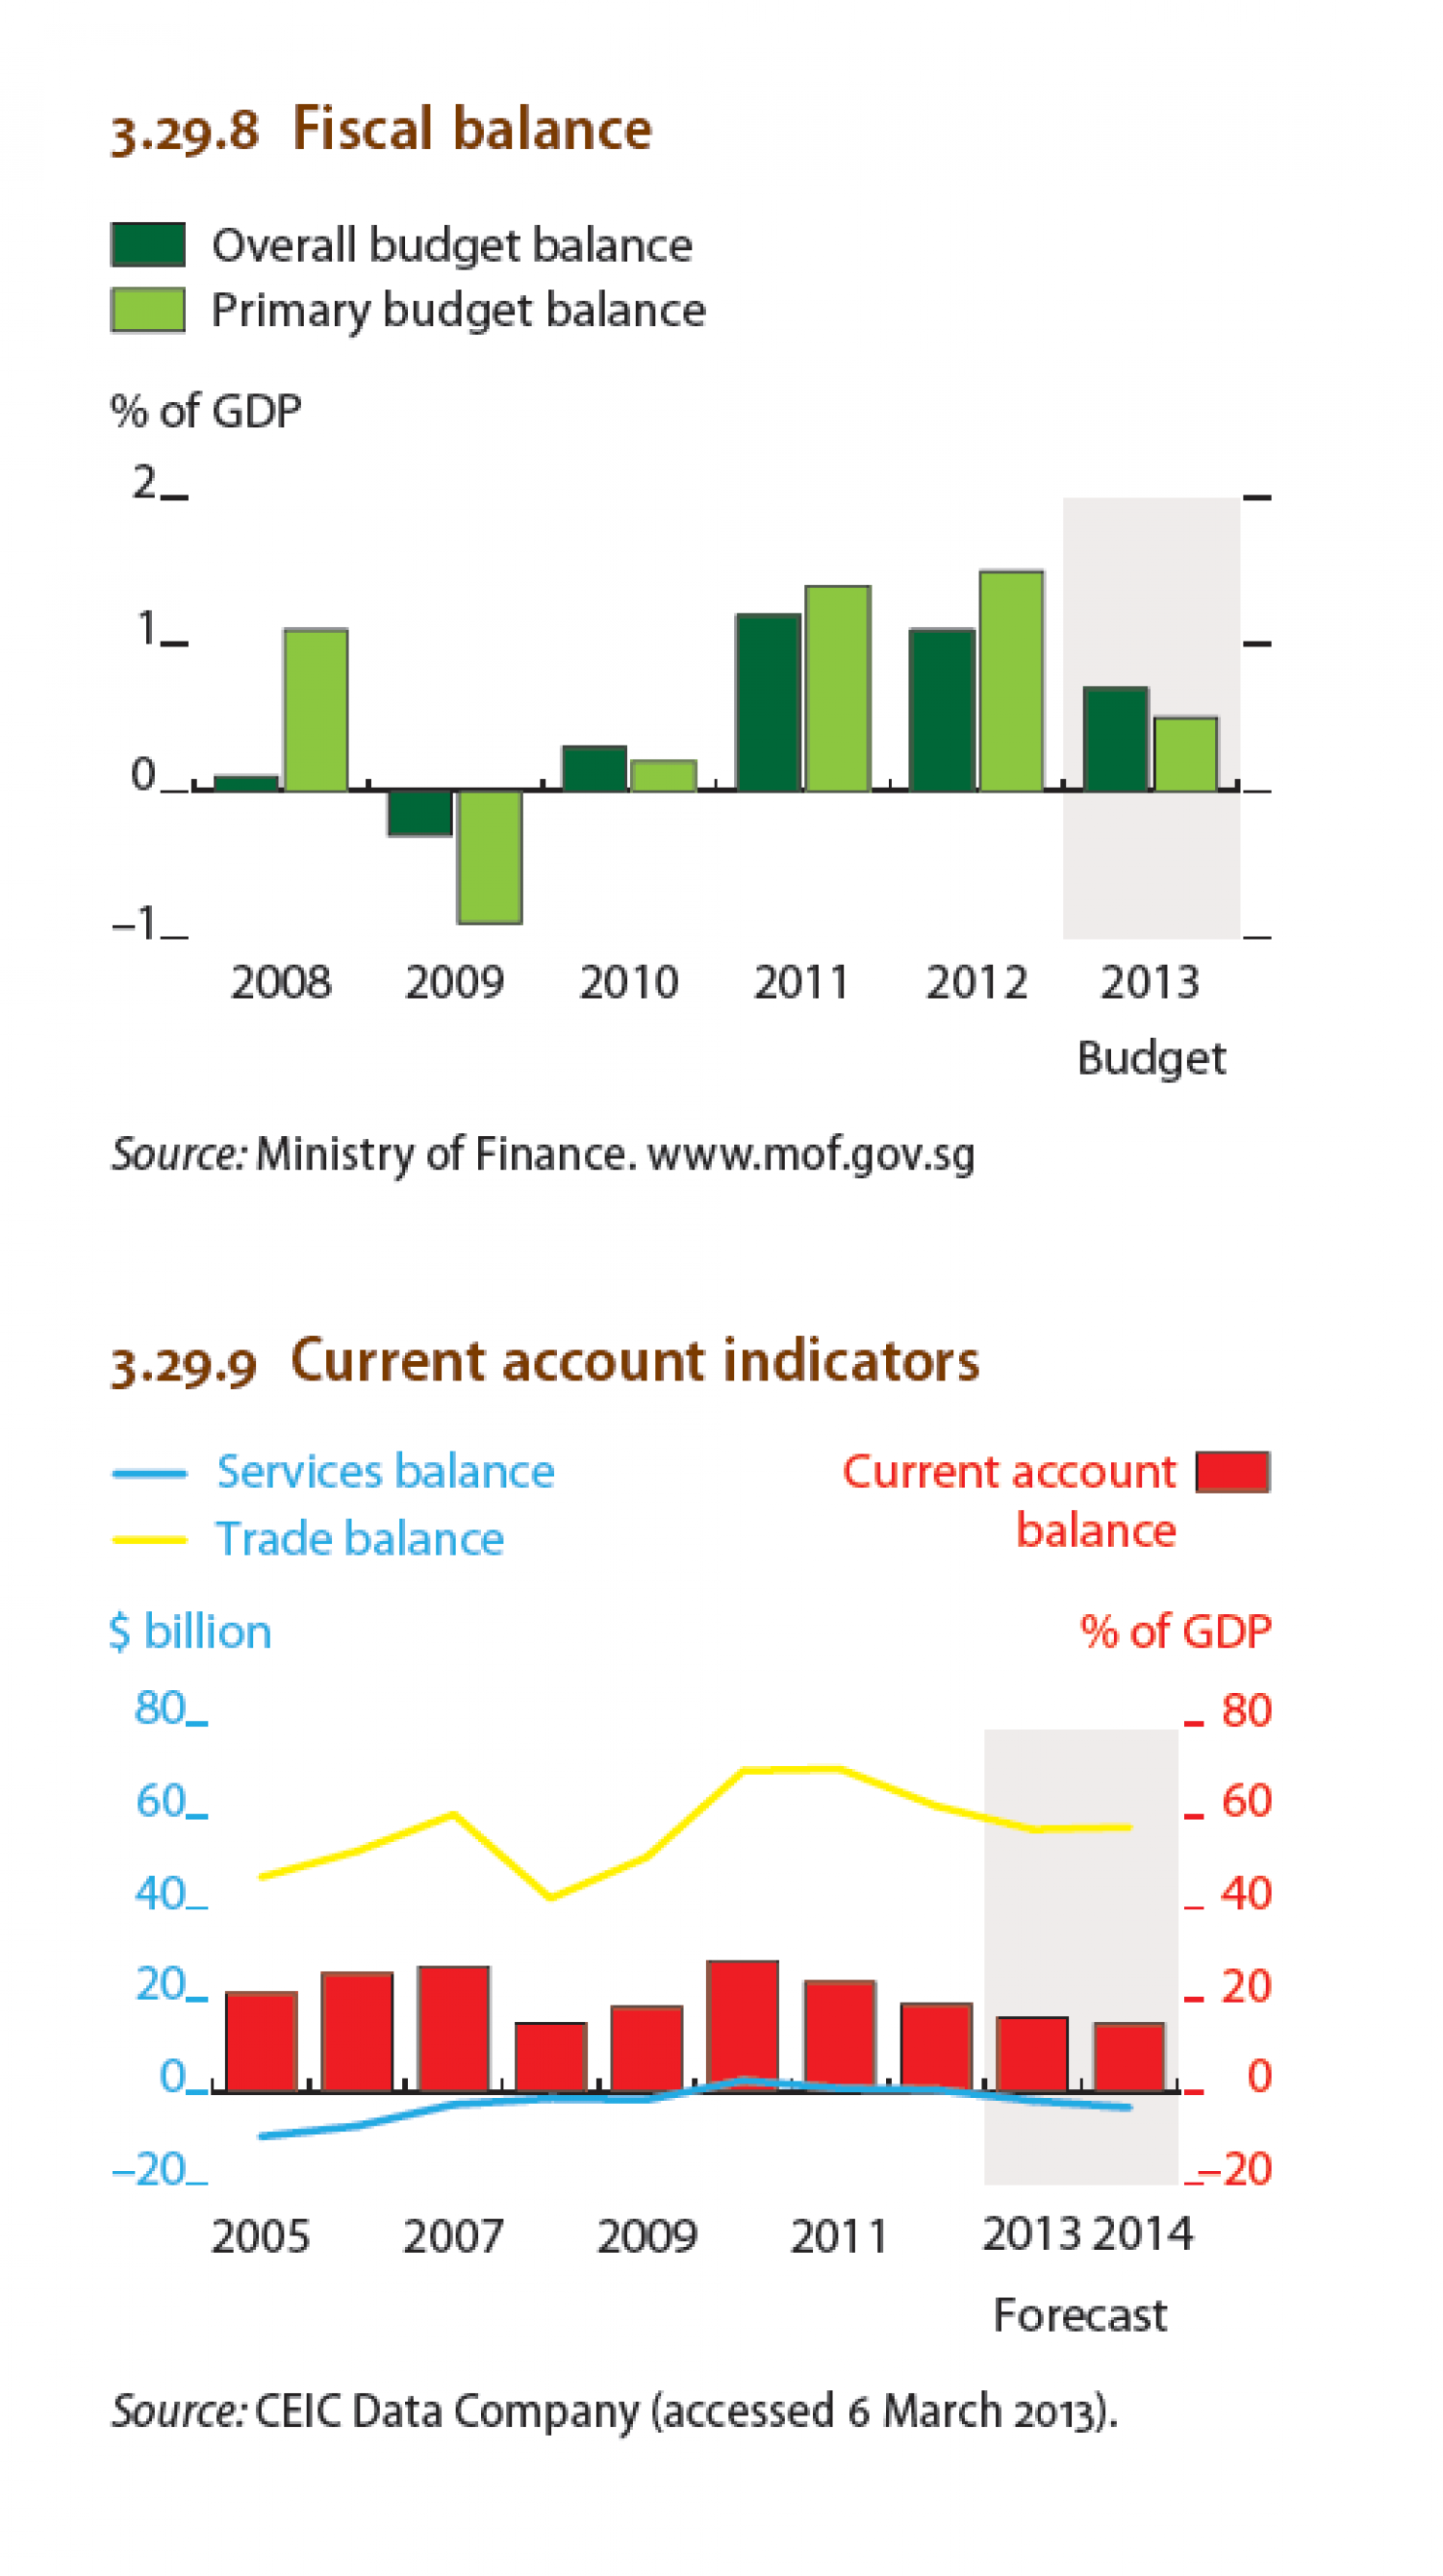 Singapore : Fiscal balance, Current account indicators Infographic